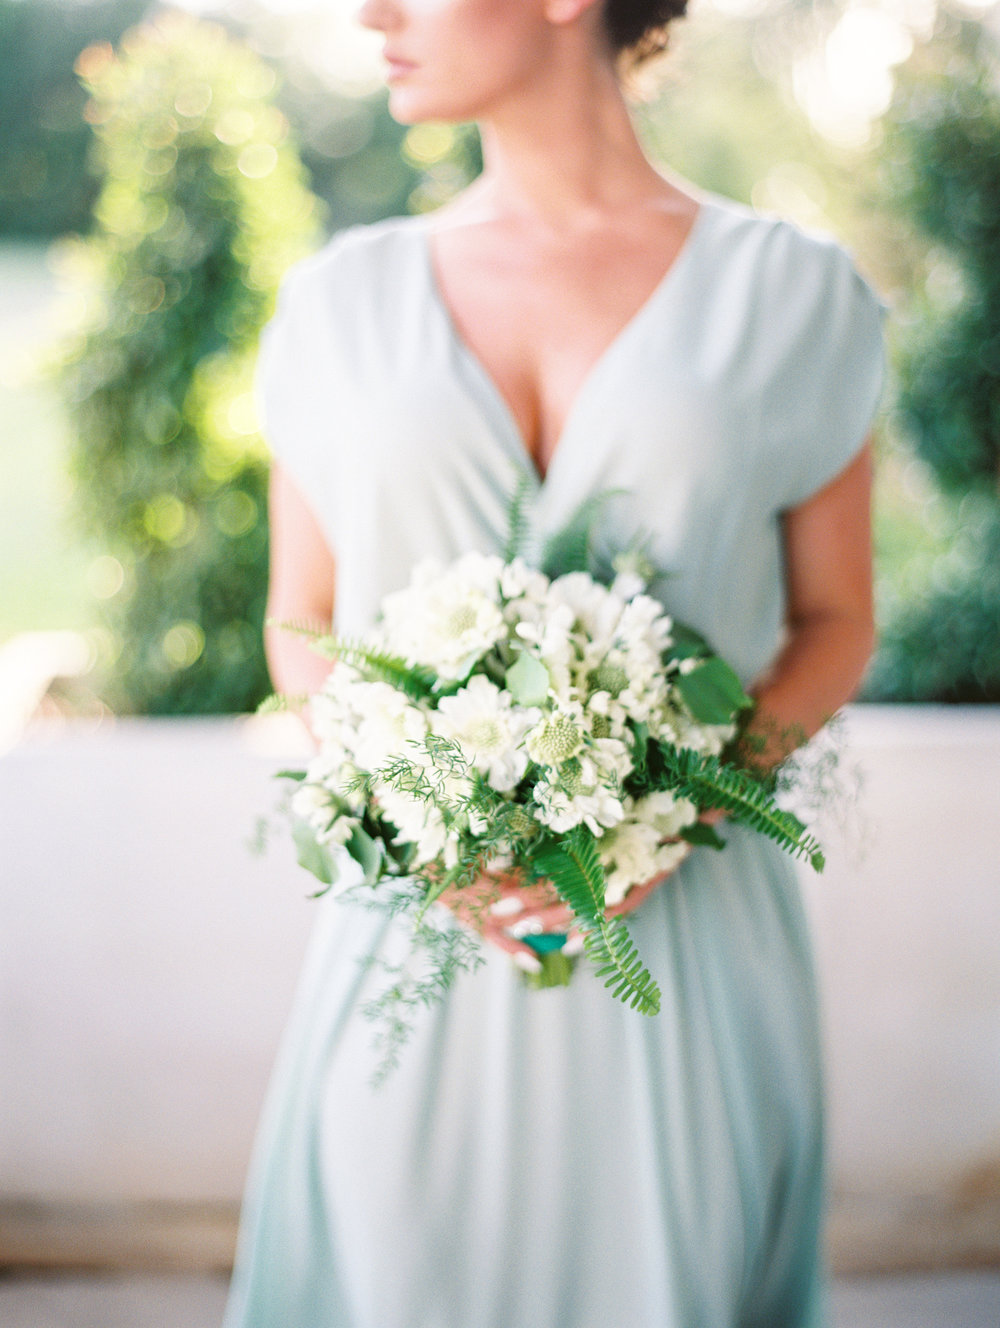 Green and white castle wedding inspiration by Columbus, Ohio wedding planner Meggie Francisco. Photo by Charla Storey.